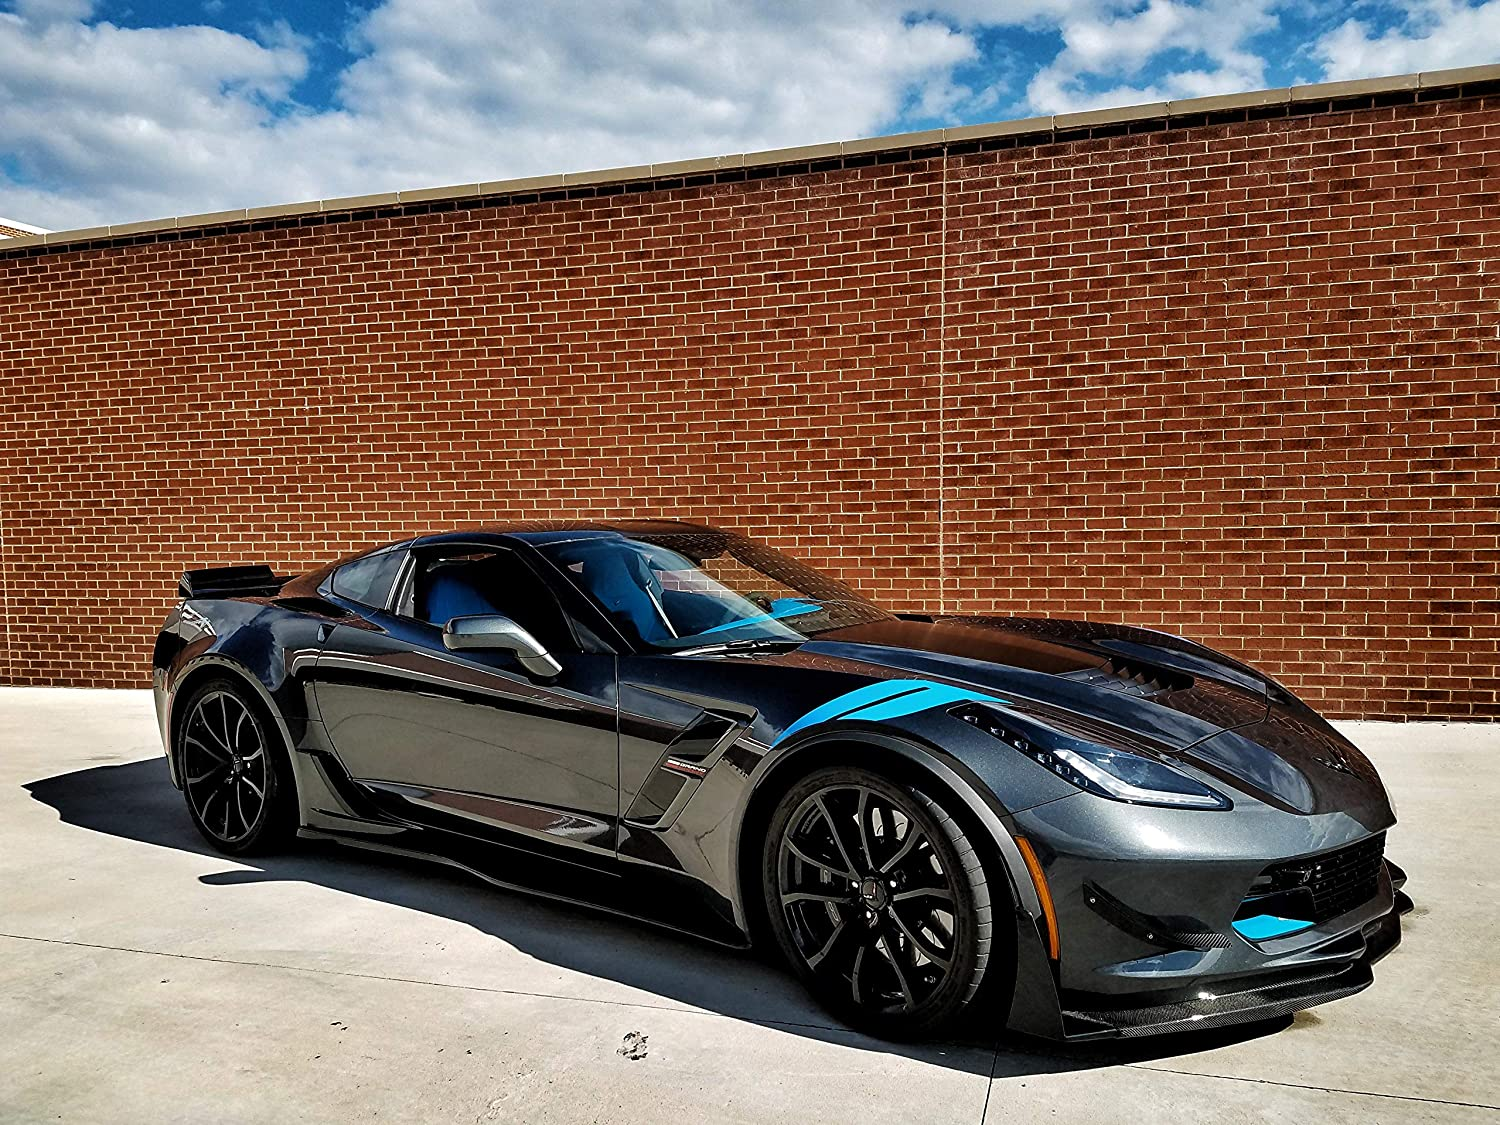 Performance Corvettes Corvette C7 Z06 Grand Sport Rocker Panels Side Skirts Custom Painted Carbon Flash Metallic ABS Plastic